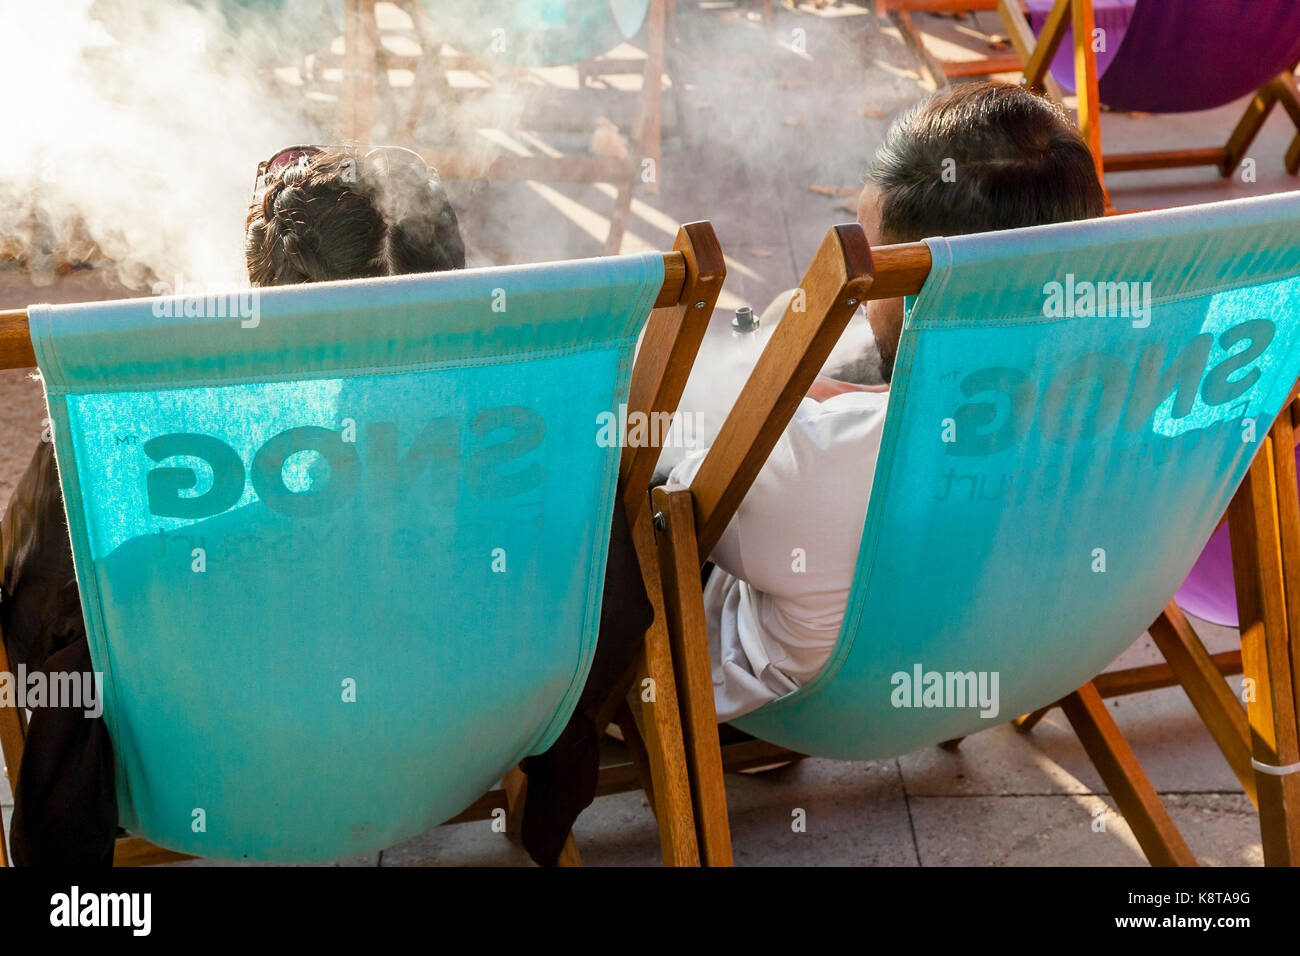 Two People Relaxing On The South Bank, London, UK - Stock Image